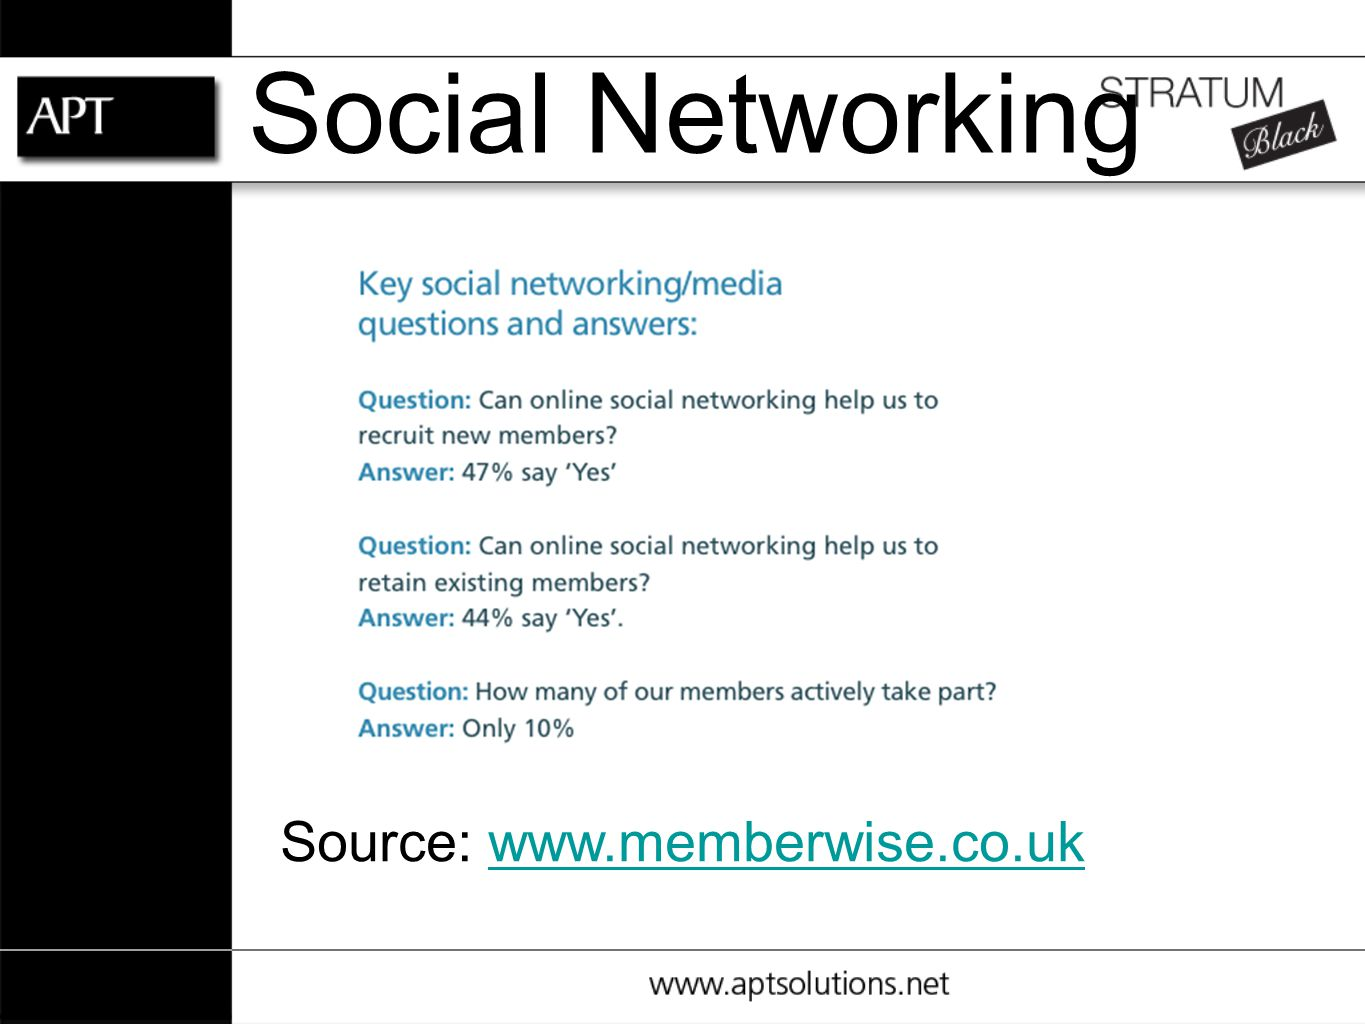 Social Networking Source: www.memberwise.co.ukwww.memberwise.co.uk